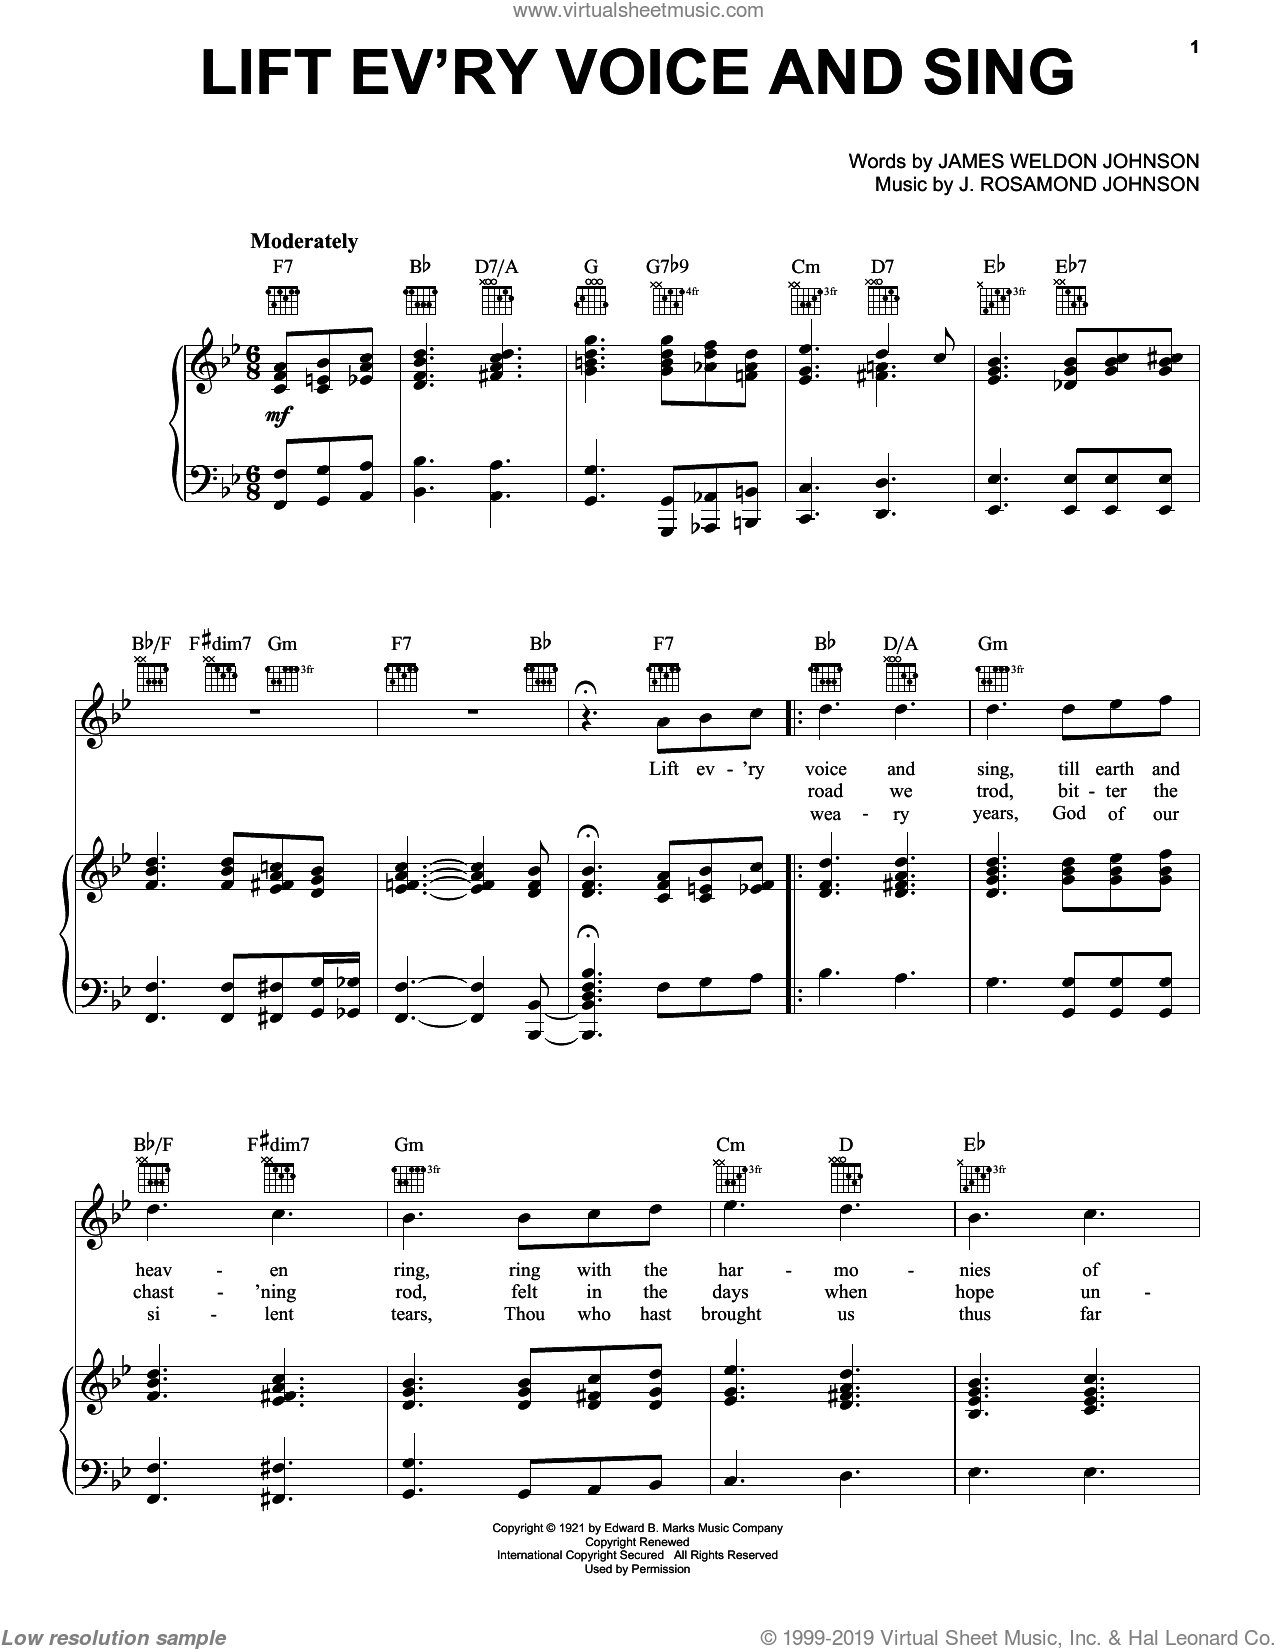 Lift Ev'ry Voice And Sing sheet music for voice, piano or guitar by James Weldon Johnson